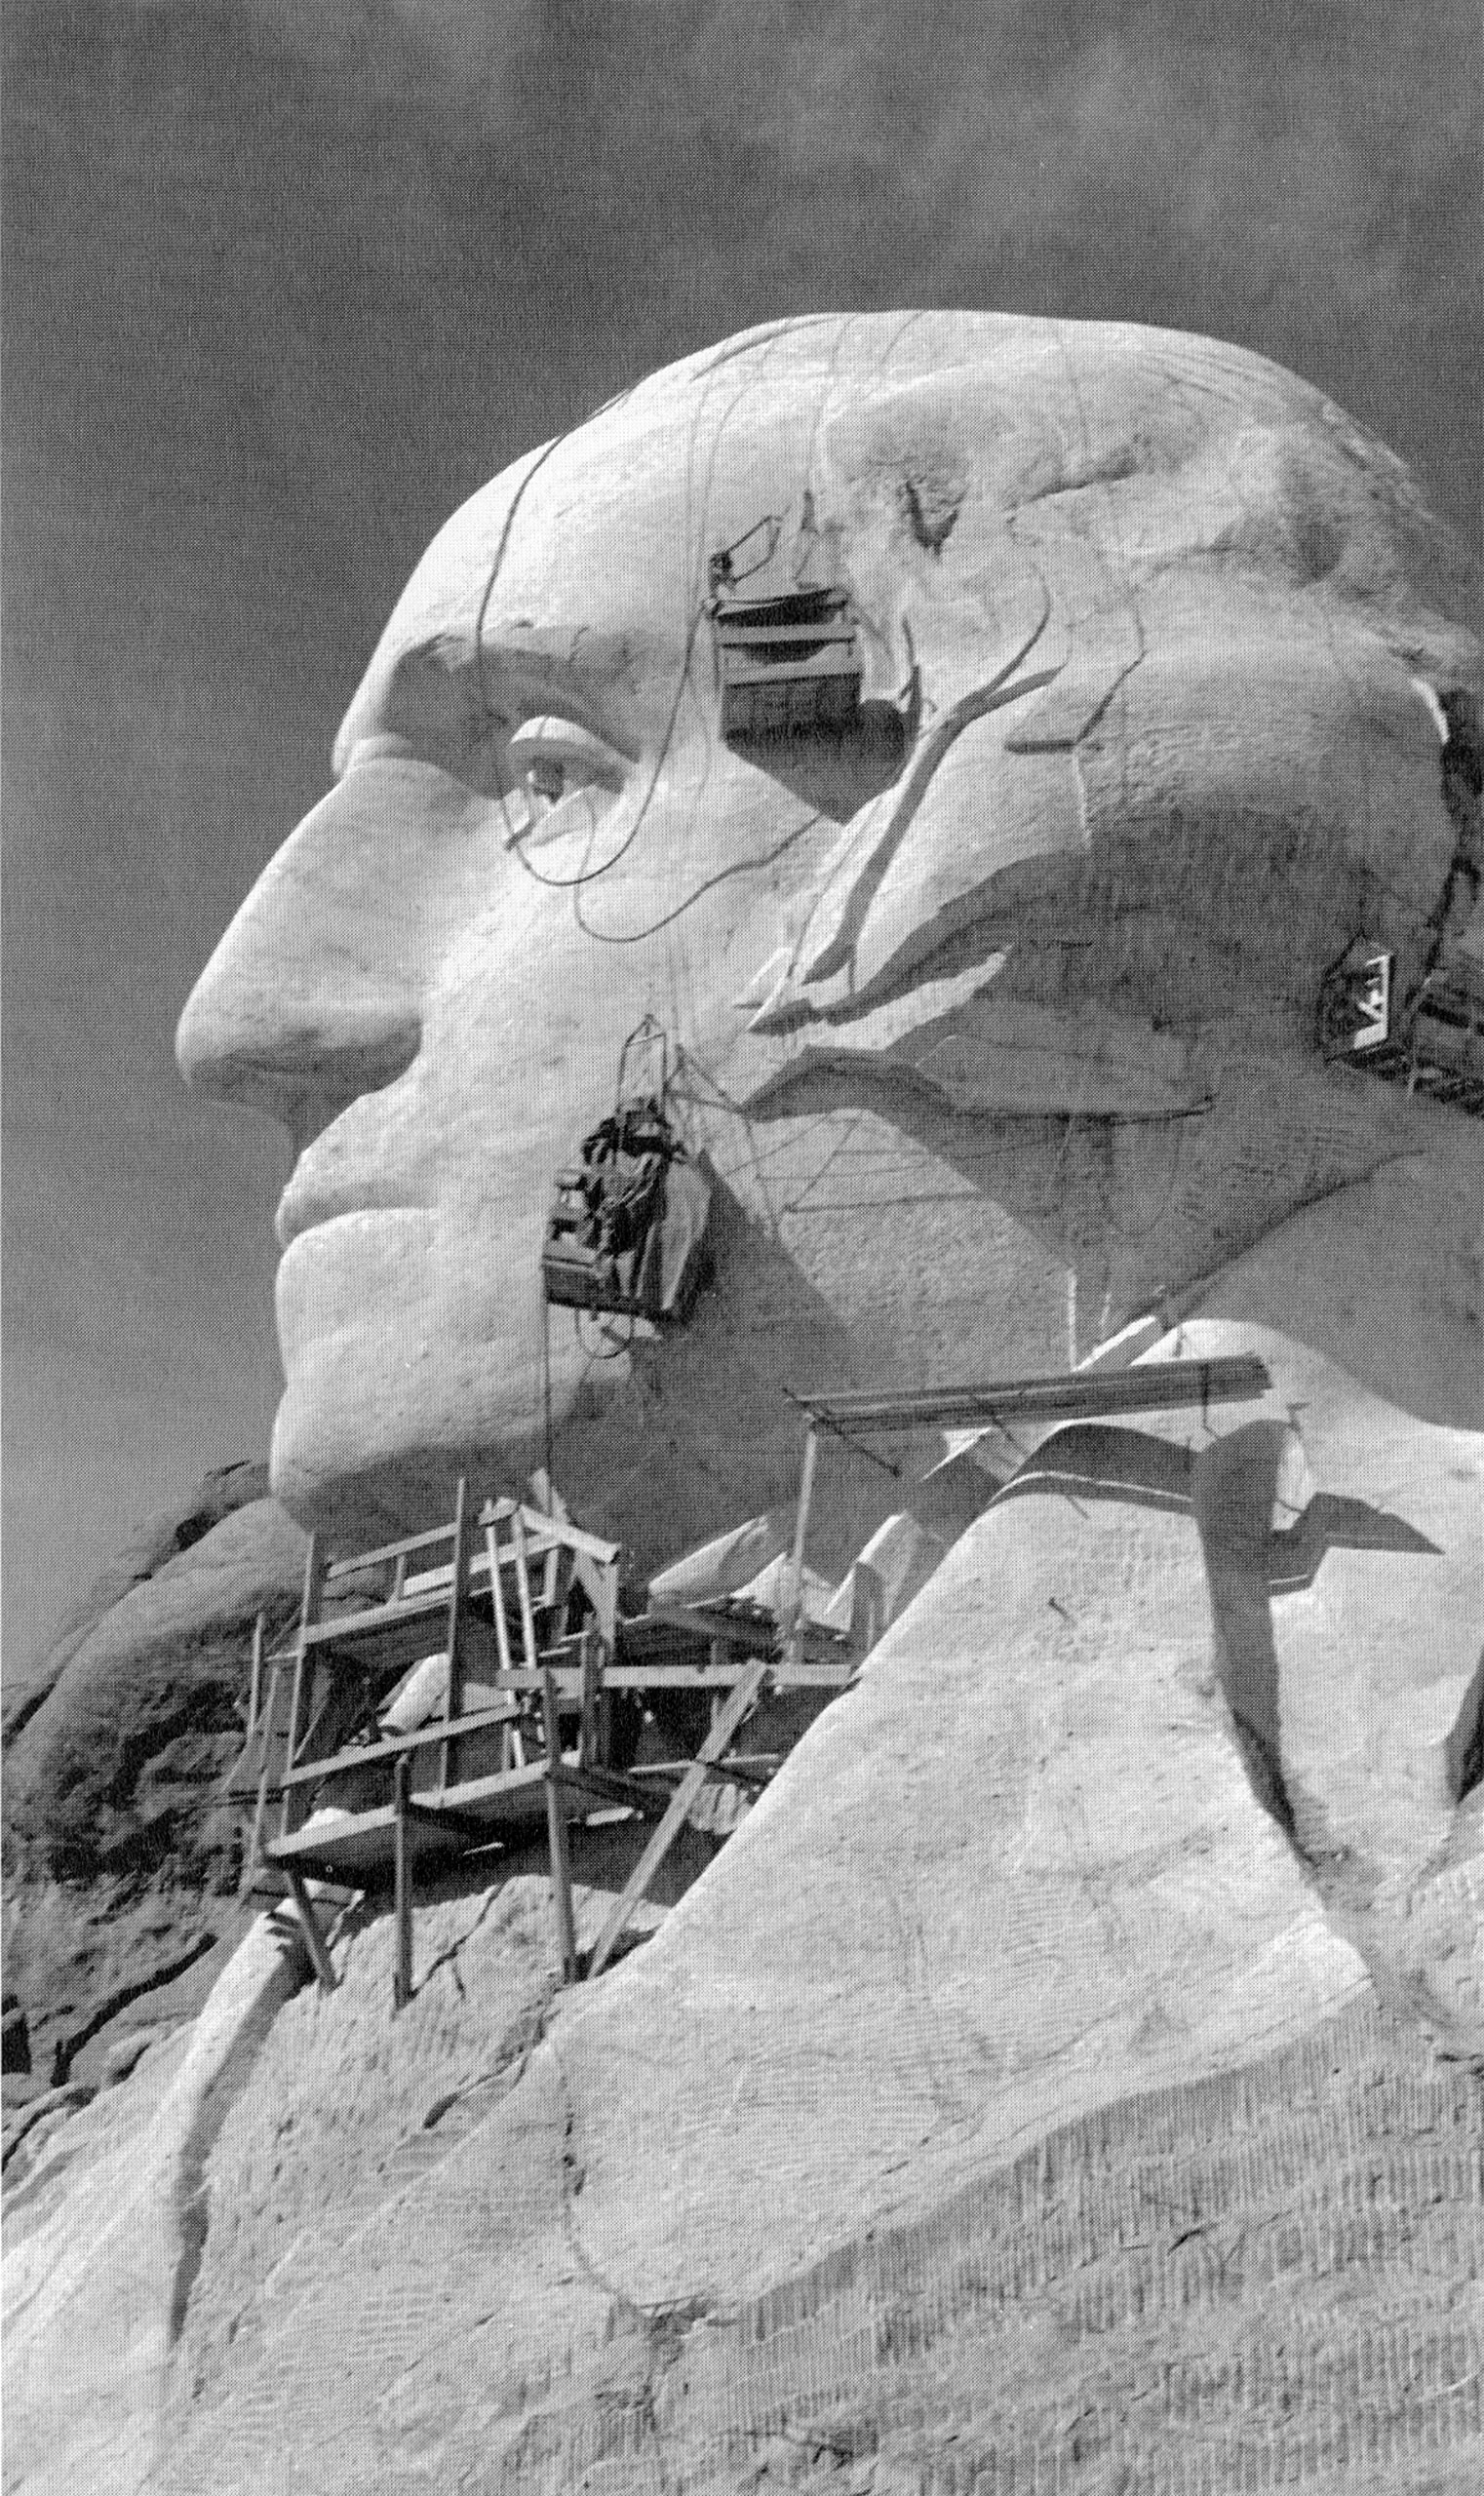 George Washington's face under construction, c. 1930s.